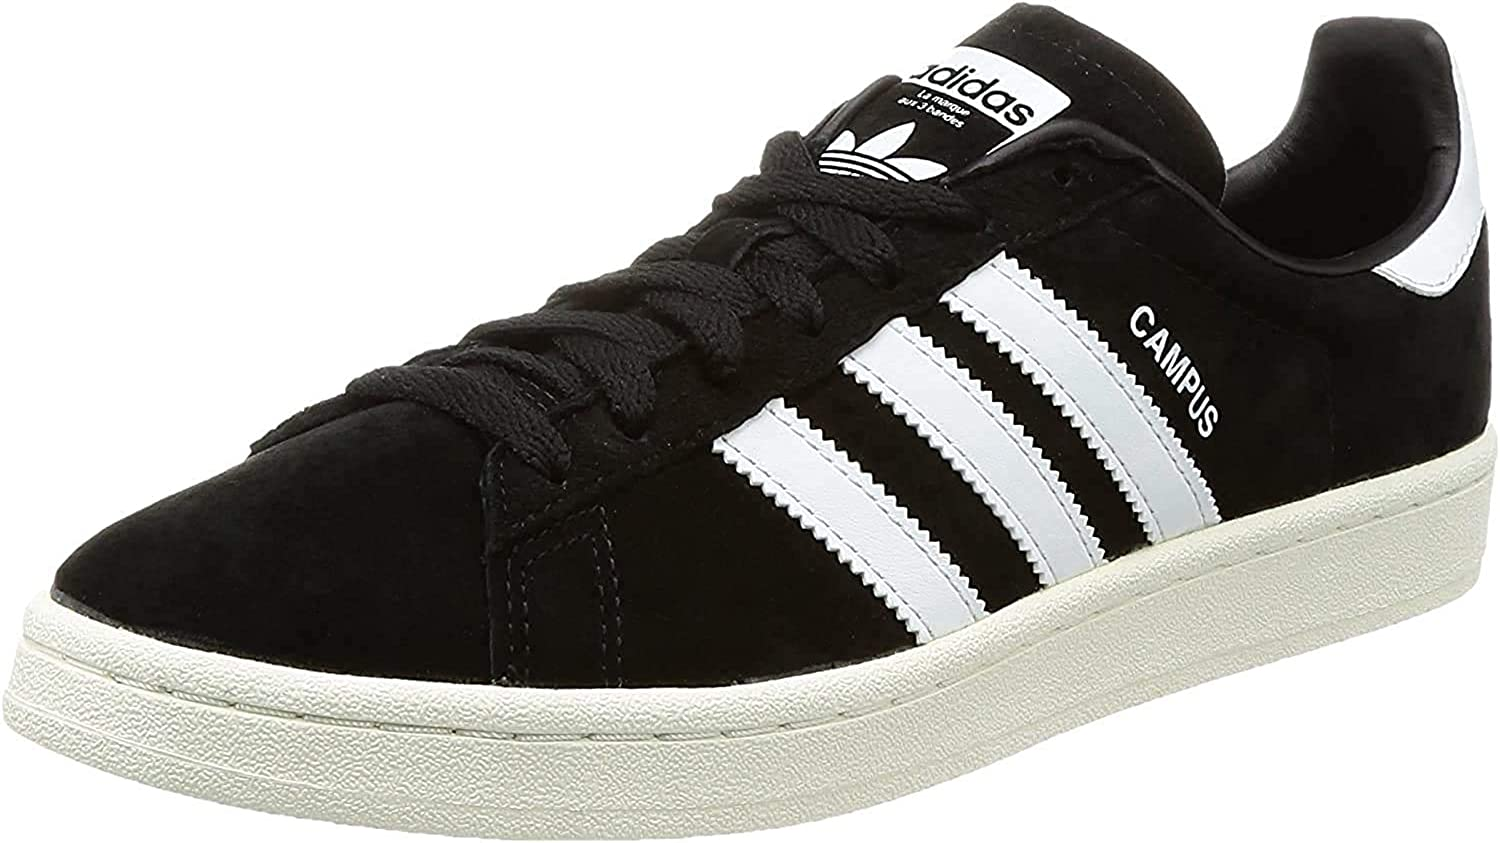 adidas Campus Bz0084, Zapatillas para Hombre Negro Core Black Footwear White Chalk White 0